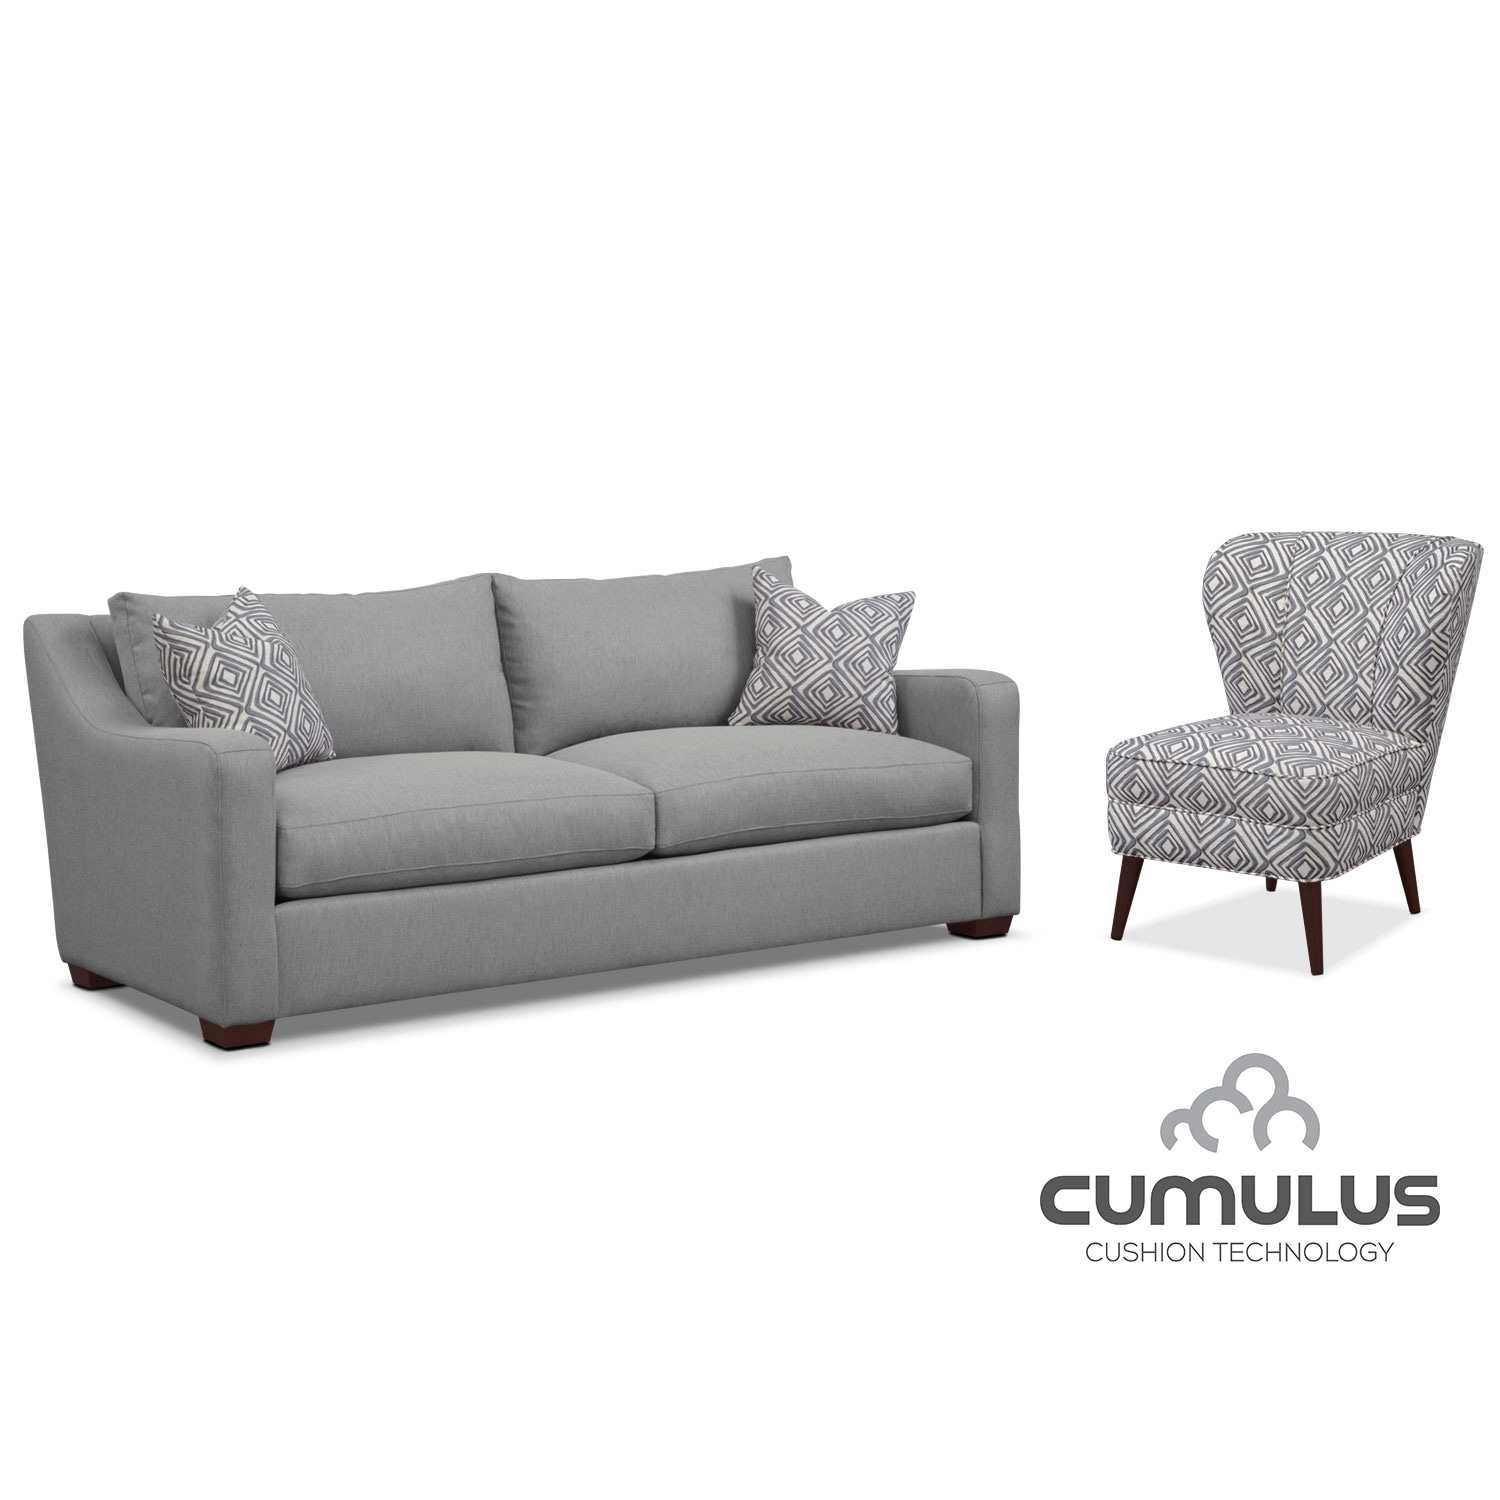 Jules Cumulus Sofa and Accent Chair Set- Gray